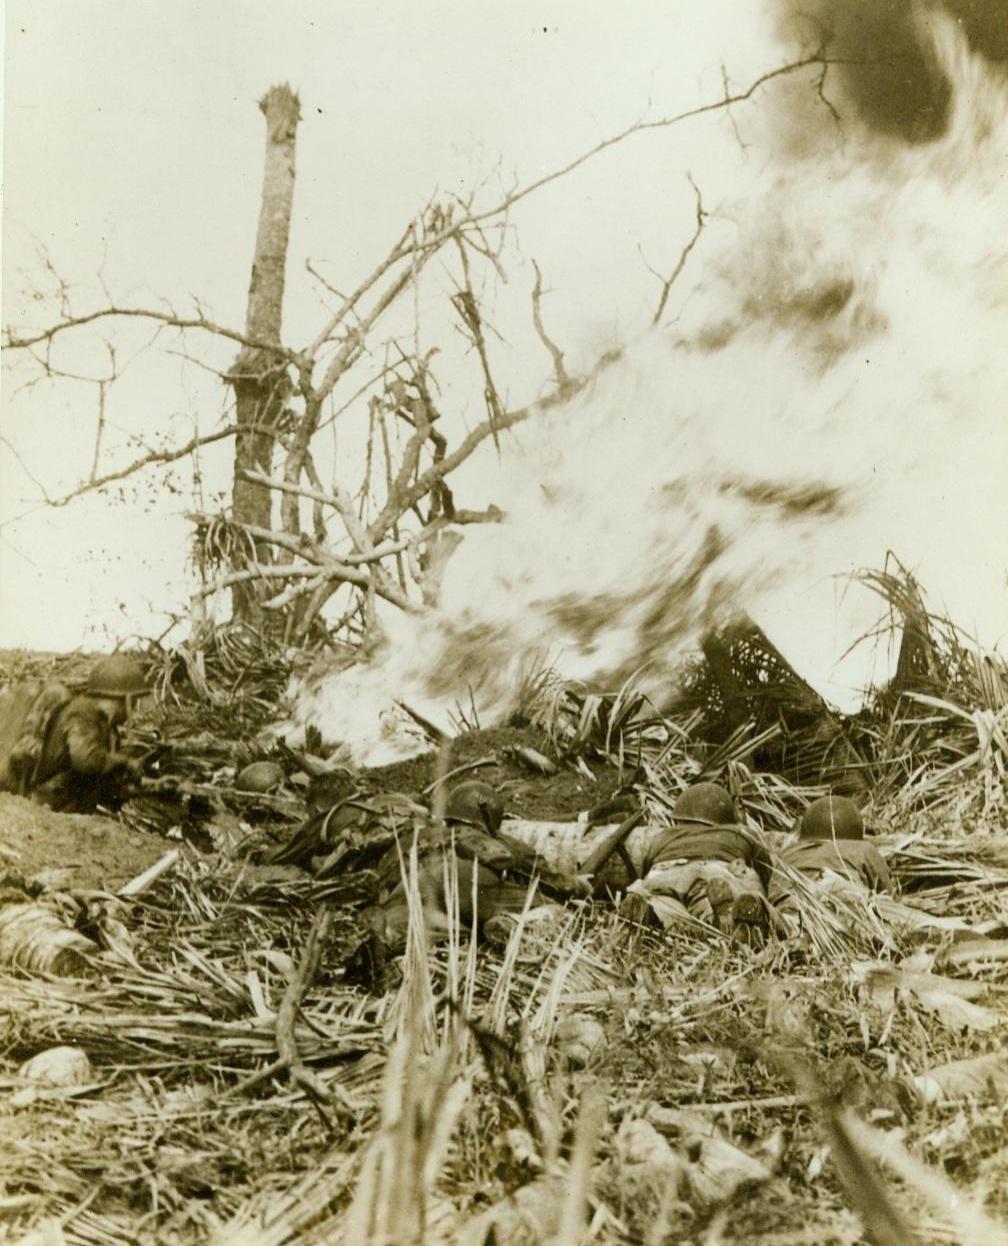 Burn Japs Out of Hiding, 8/2/1944. Guam-- While a Marine (Left) uses a flame thrower to burn the enemy out of a hidden pillbox on Guam, his buddies wait with guns poised for the Japs to show themselves. Although surrounded by leathernecks, the Japs refused to Surrender. (ACME);